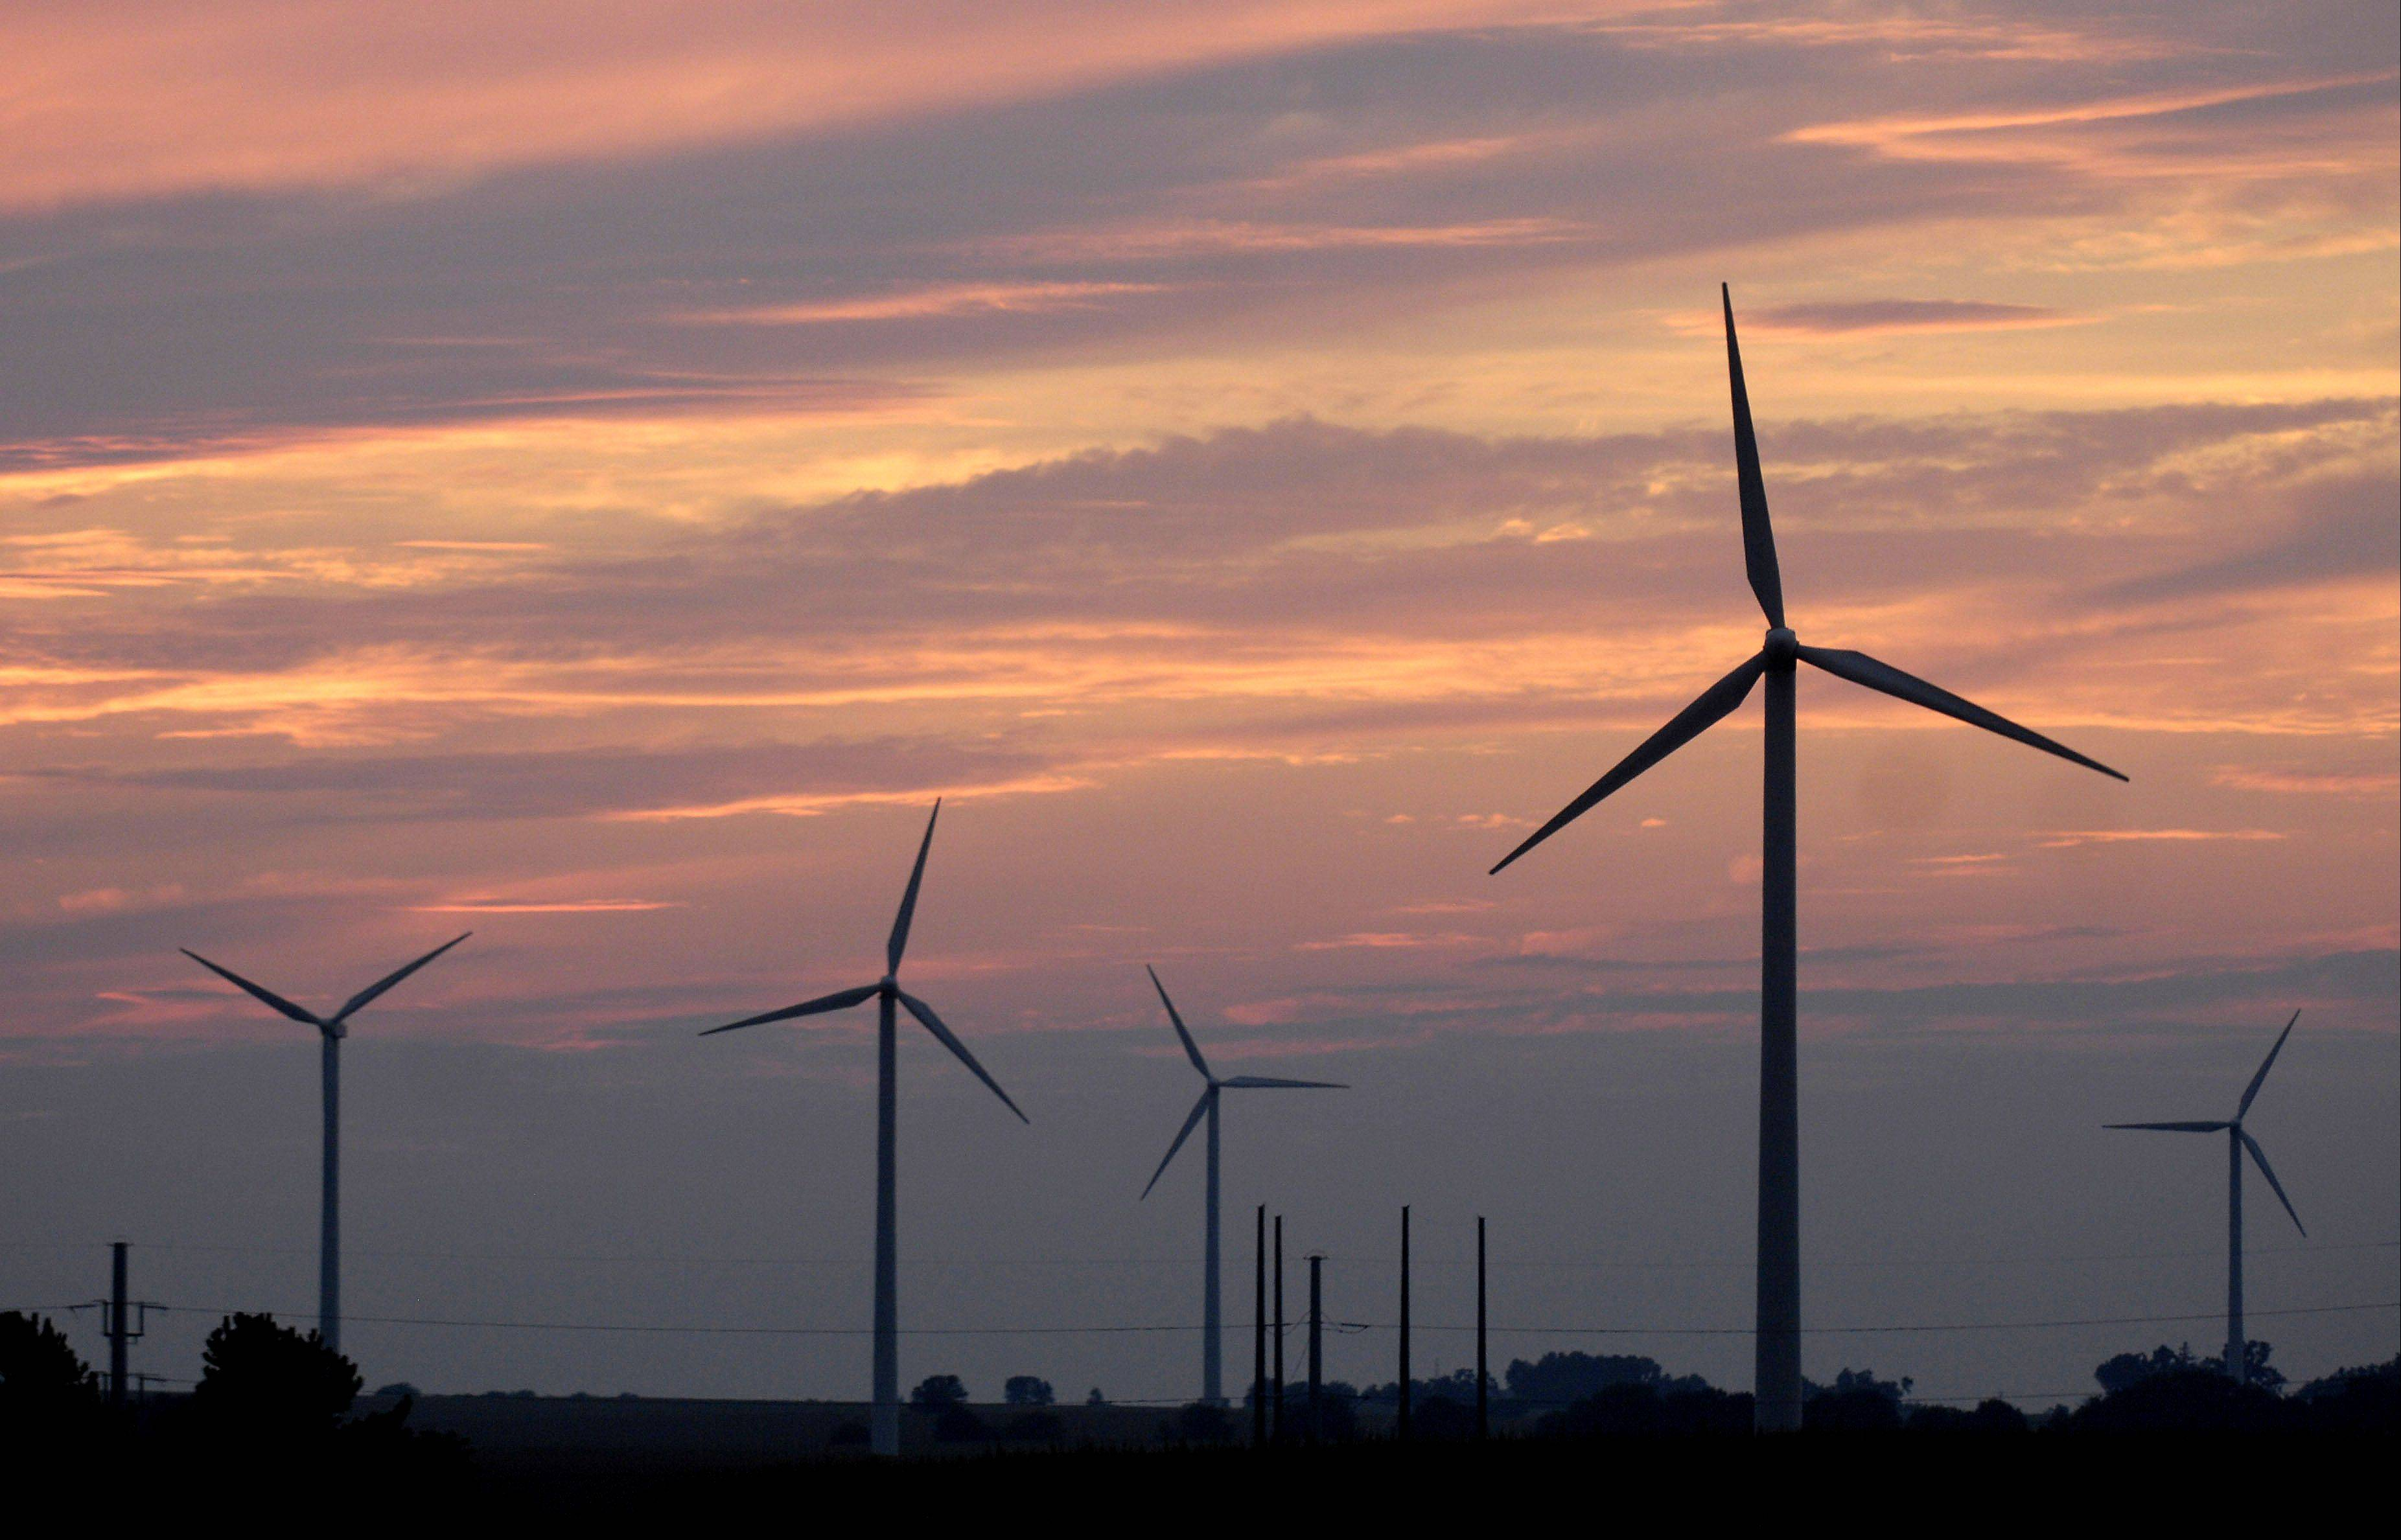 A consortium of Community Unit District 300, Keeneyville Elementary District 20 and Prospect Heights Elementary District 23 is considering an agreement to lease wind turbines from Invenergy for 20 years. The company operates a wind farm in Bishop Hill.